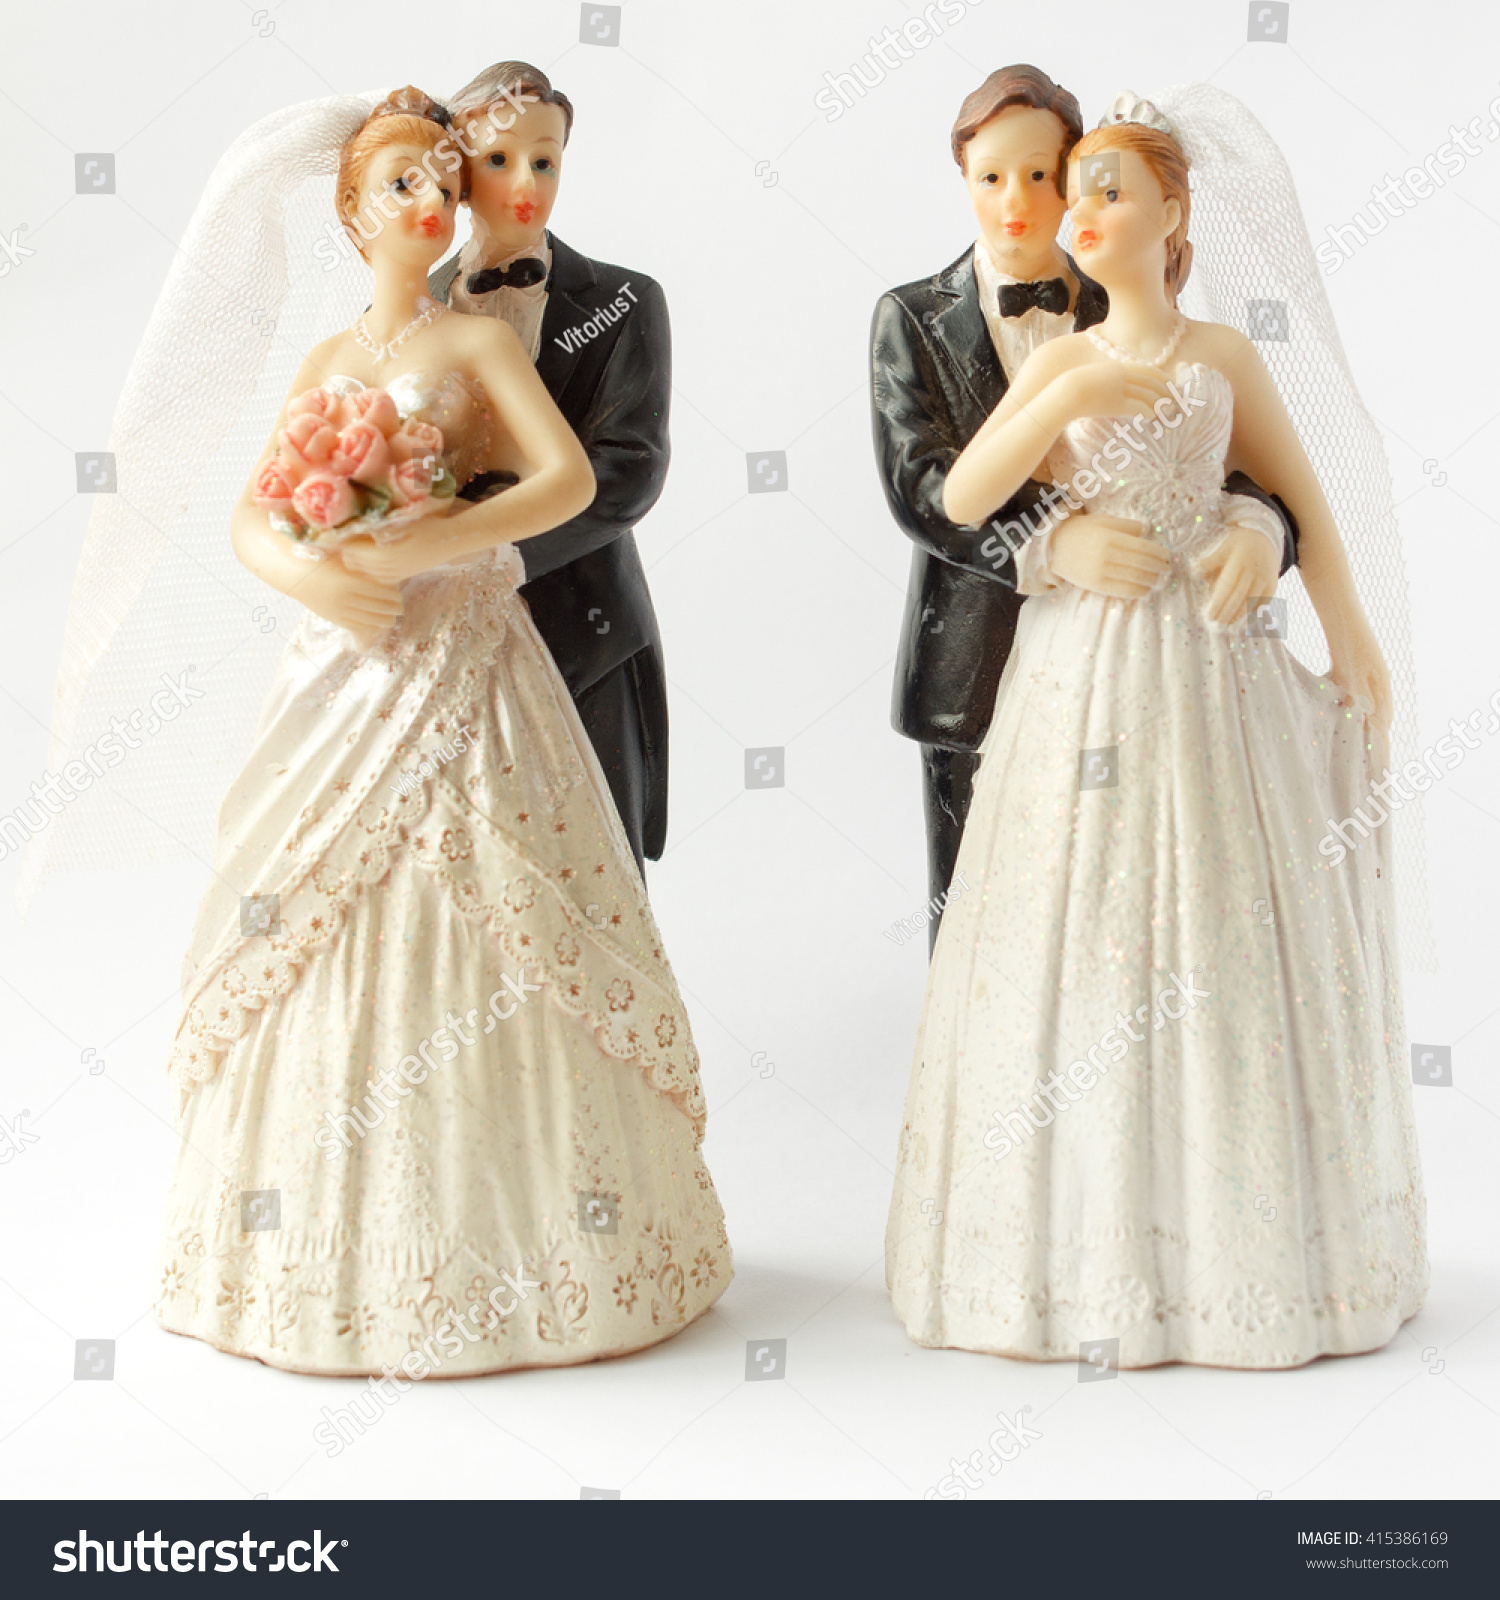 Two Pair Bride Groom Wedding Cake Stock Photo & Image (Royalty-Free ...